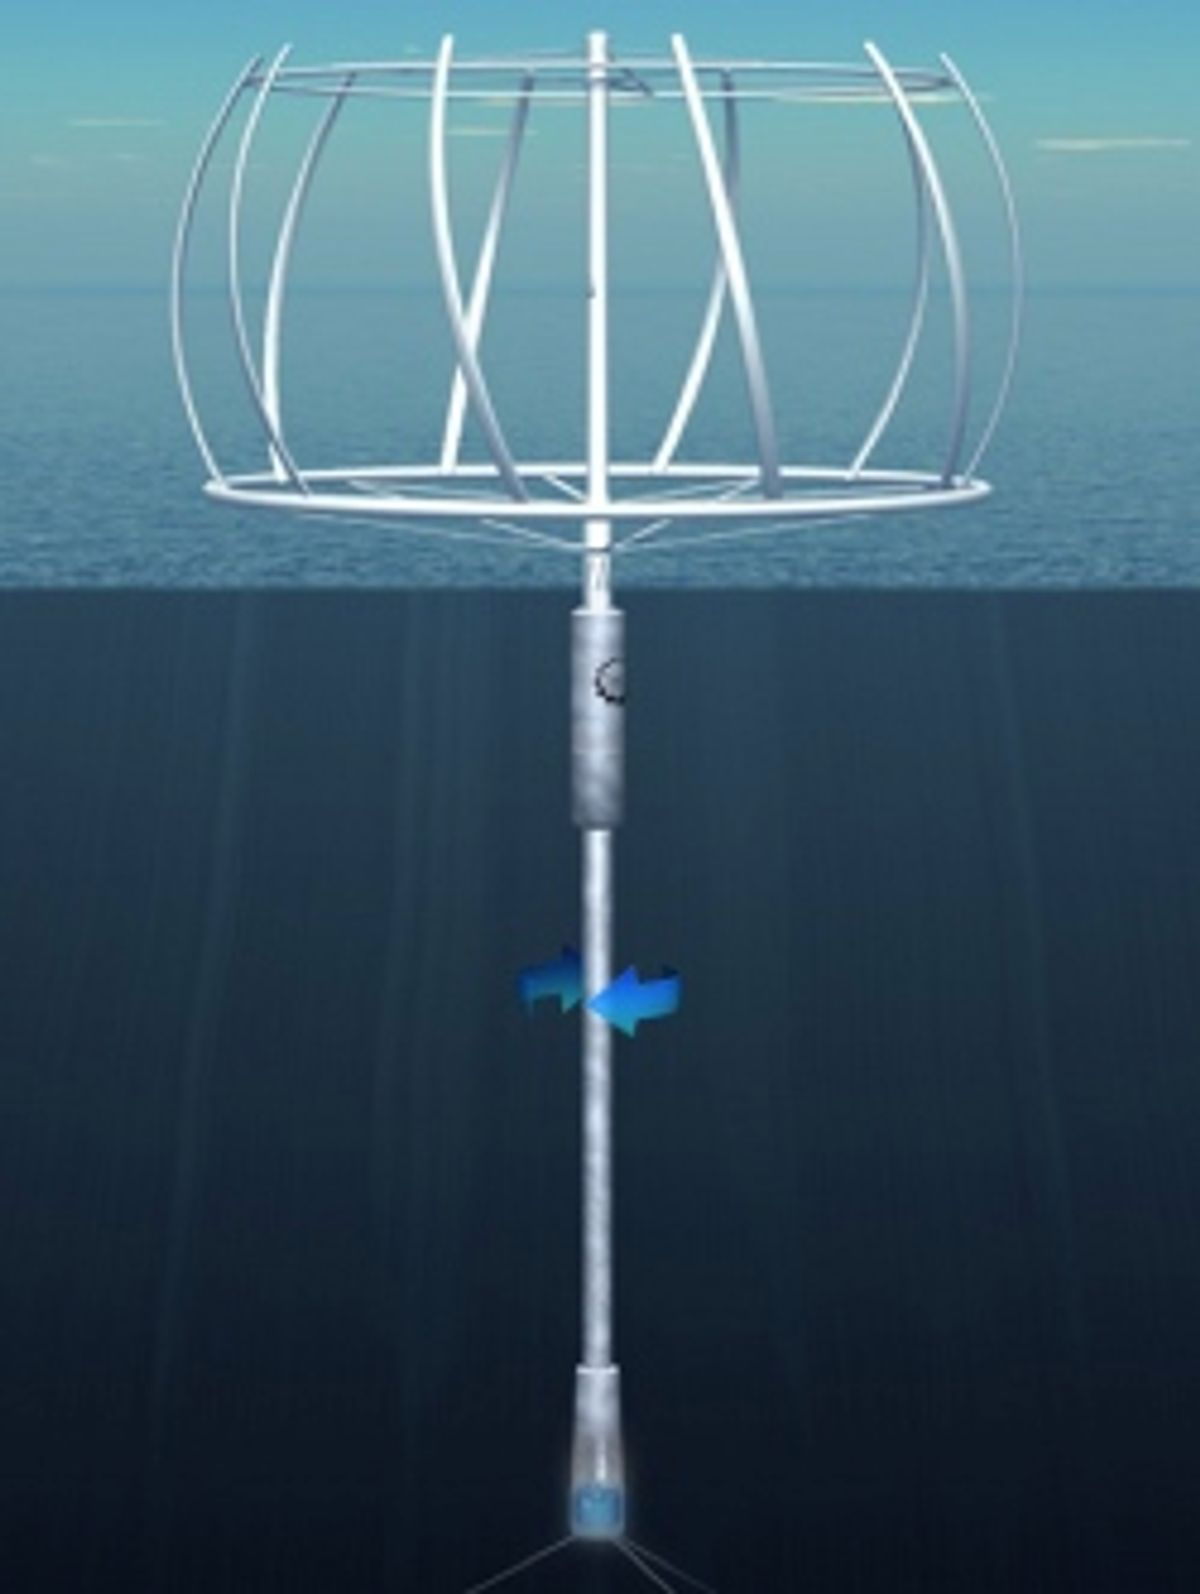 Twirling for Power: New Offshore Turbine Design Can Store Energy